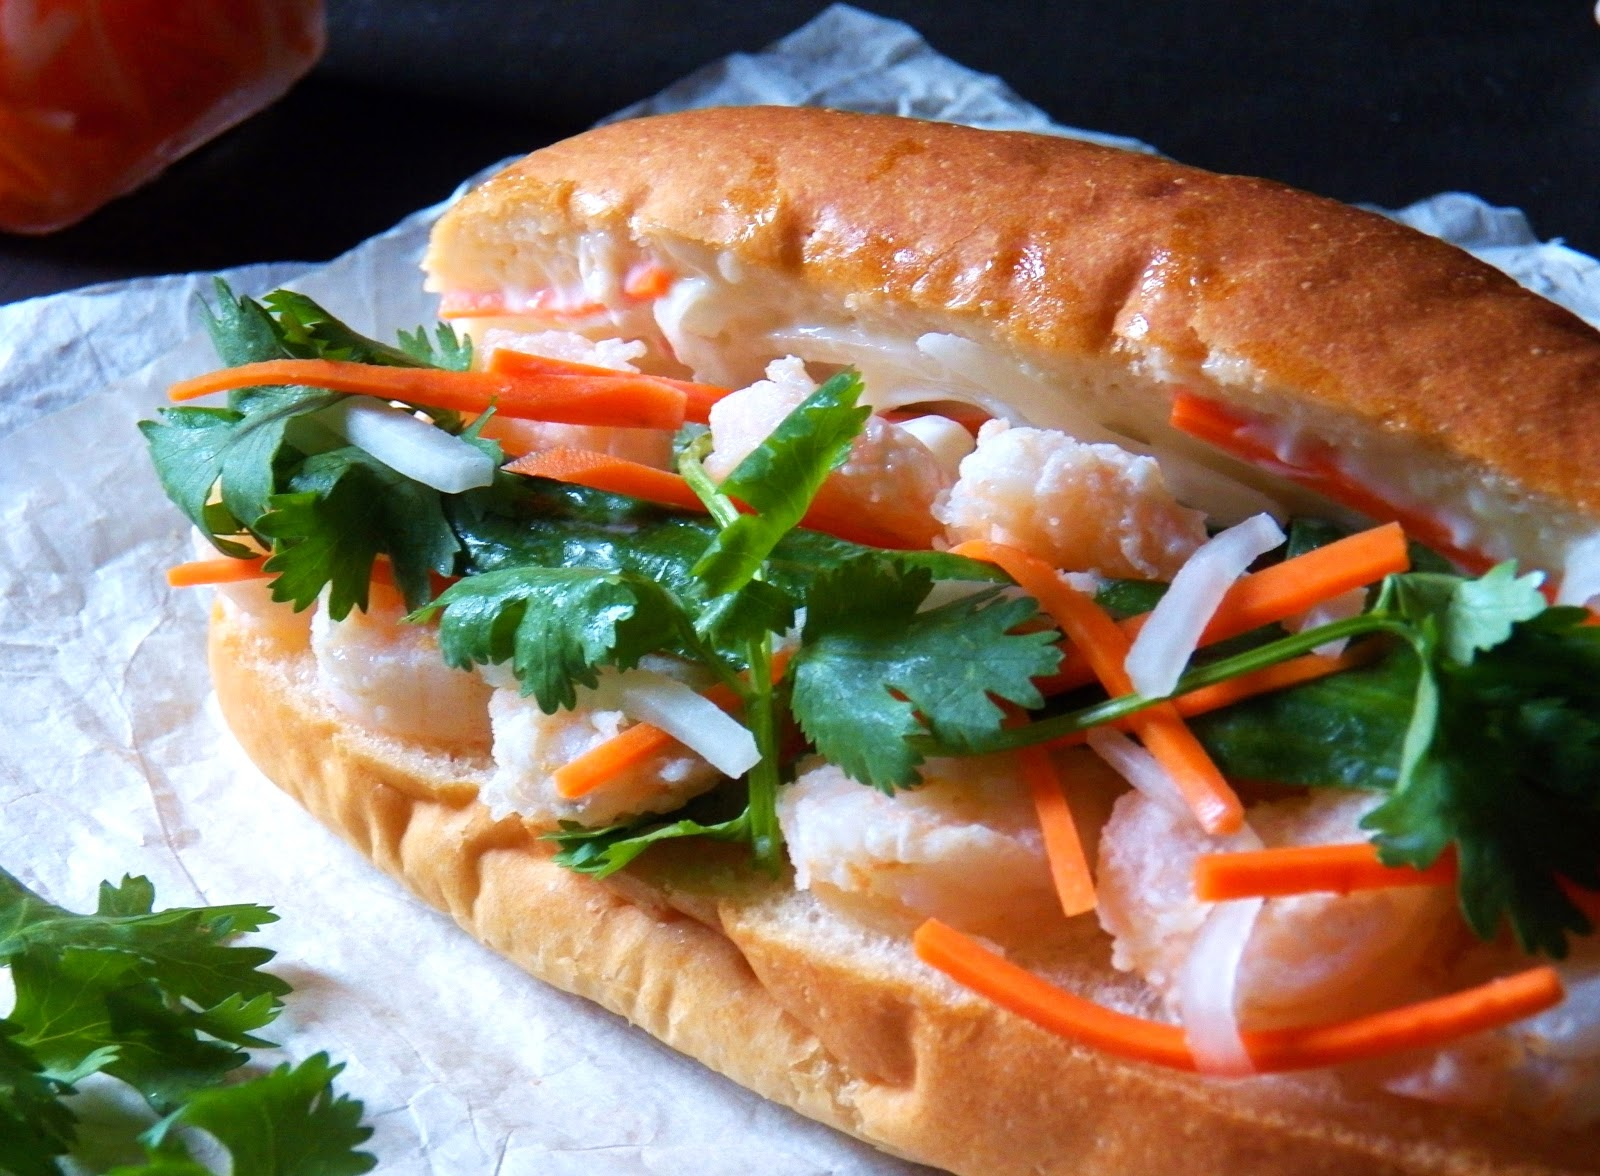 Fried Shrimp Banh Mi (Vietnamese Sandwich)